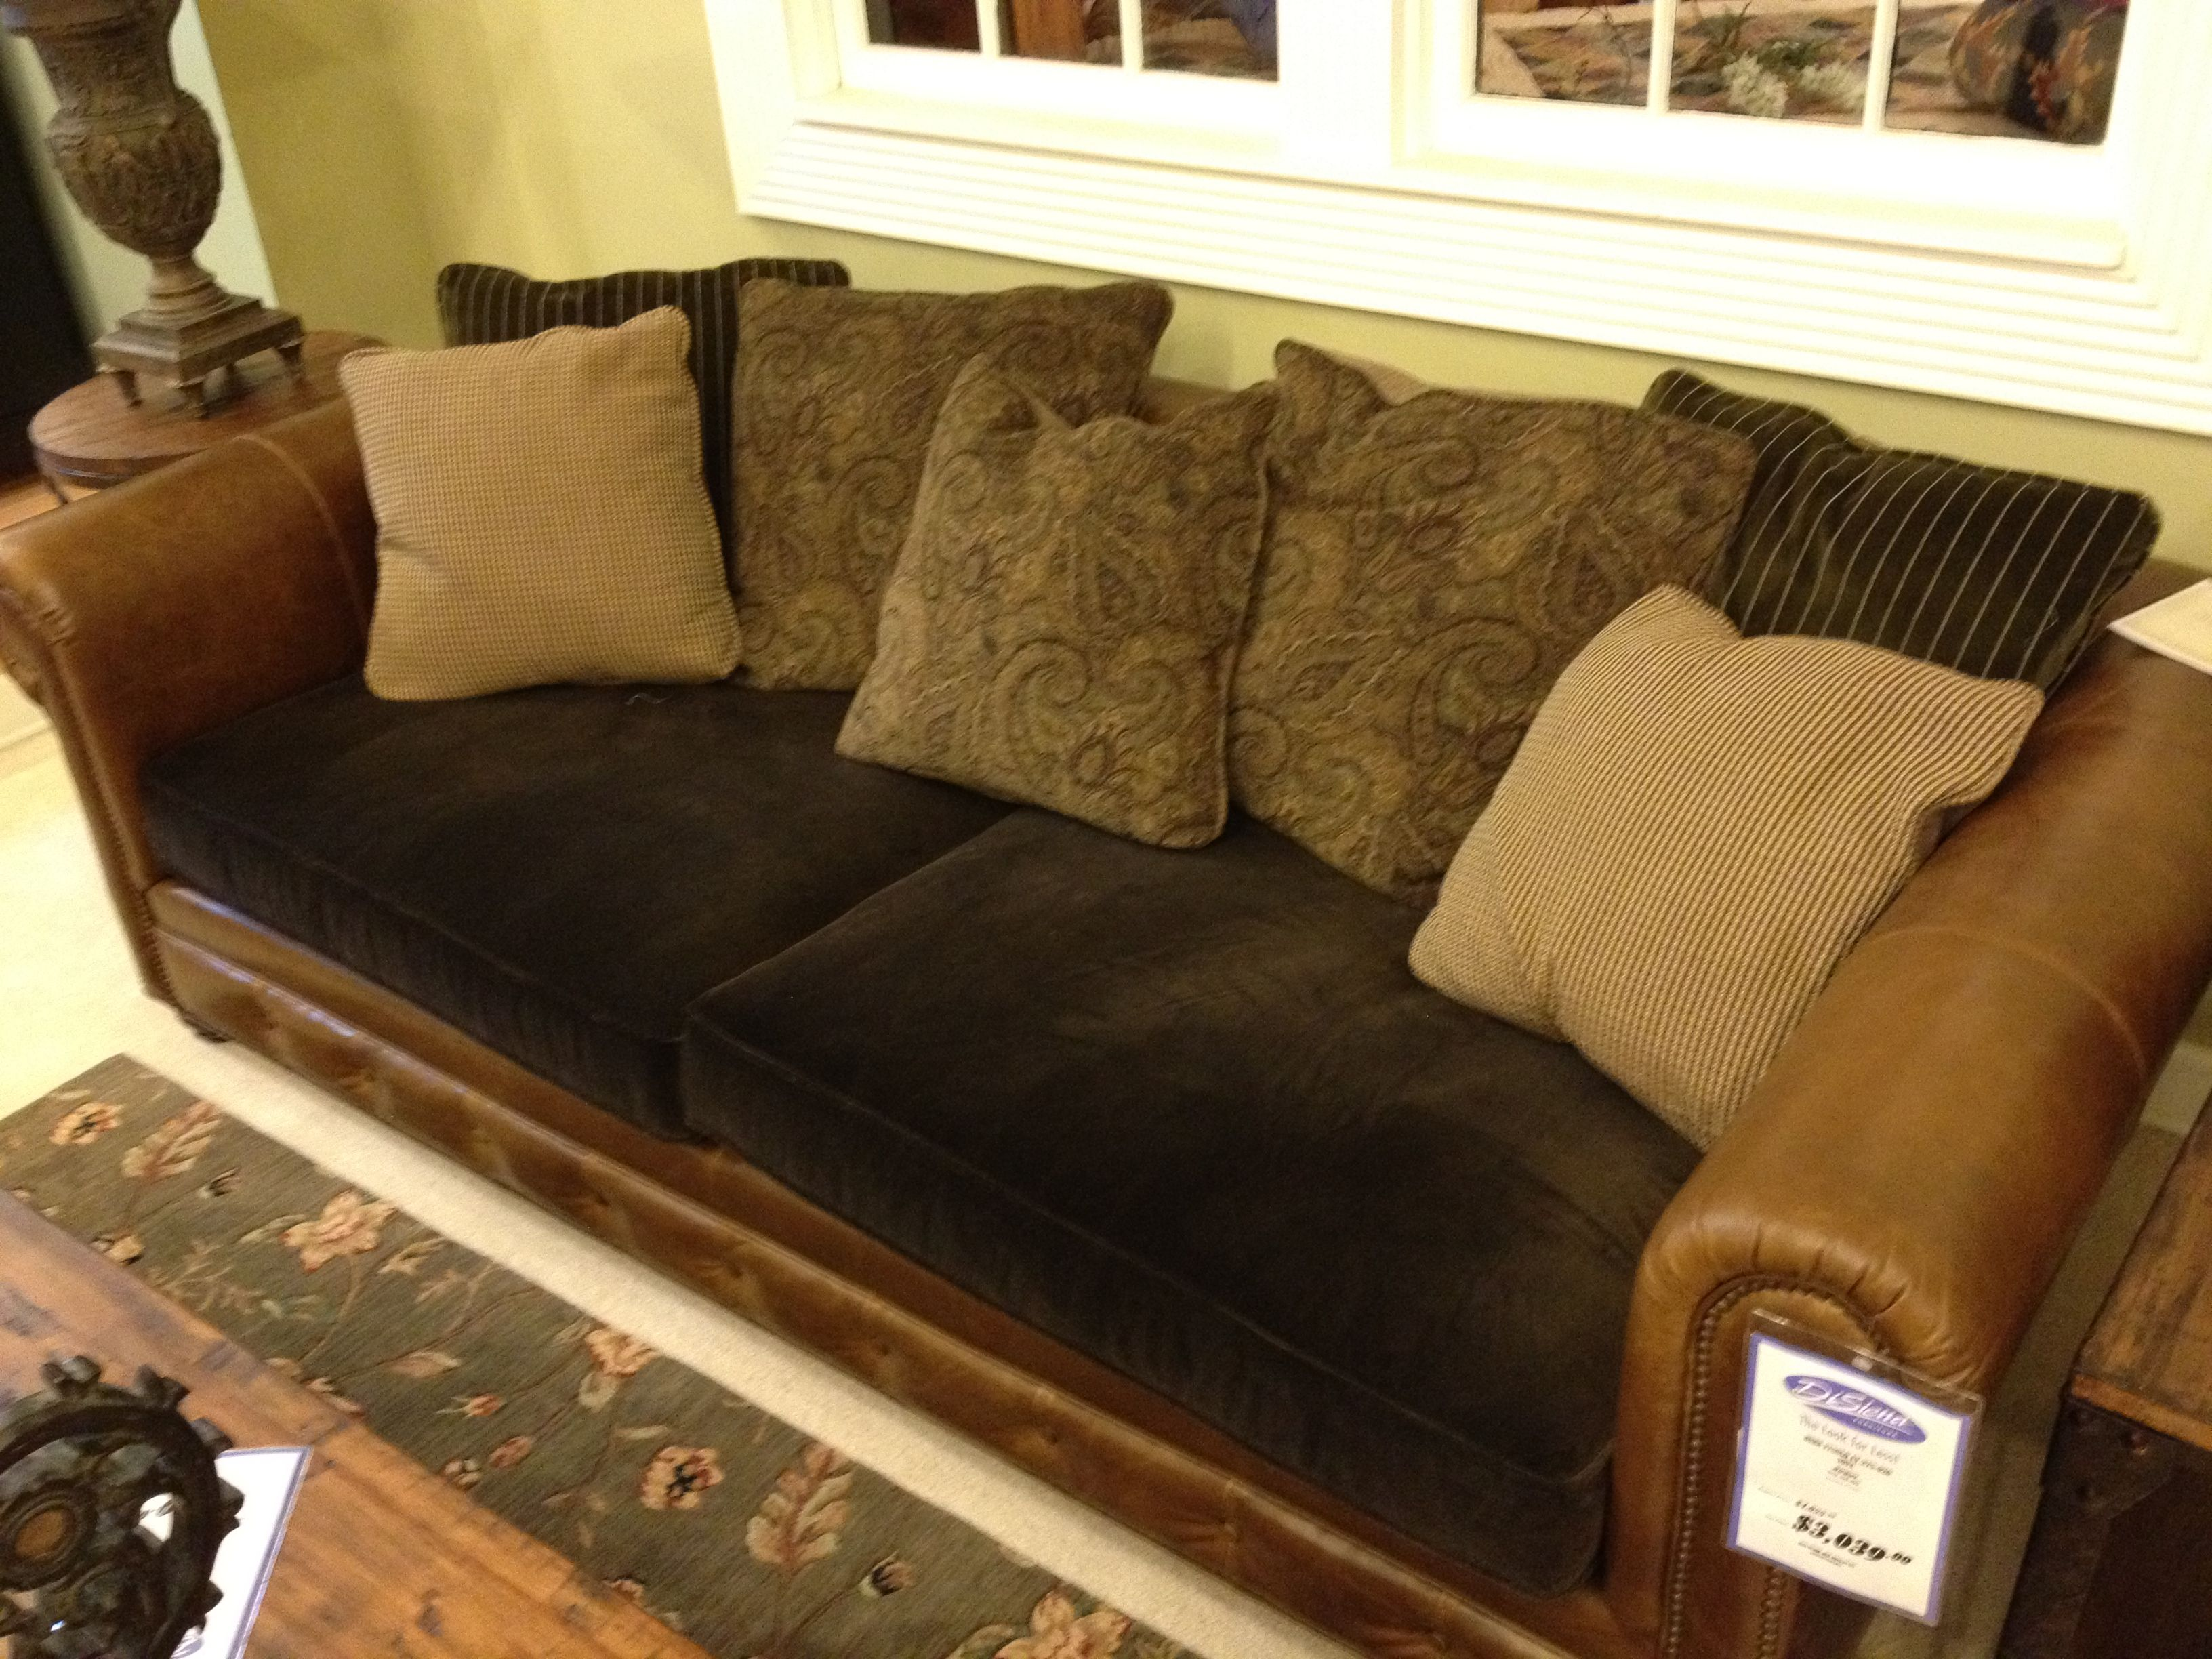 Leather Couch With Fabric Cushions Furniture Cushions On Sofa